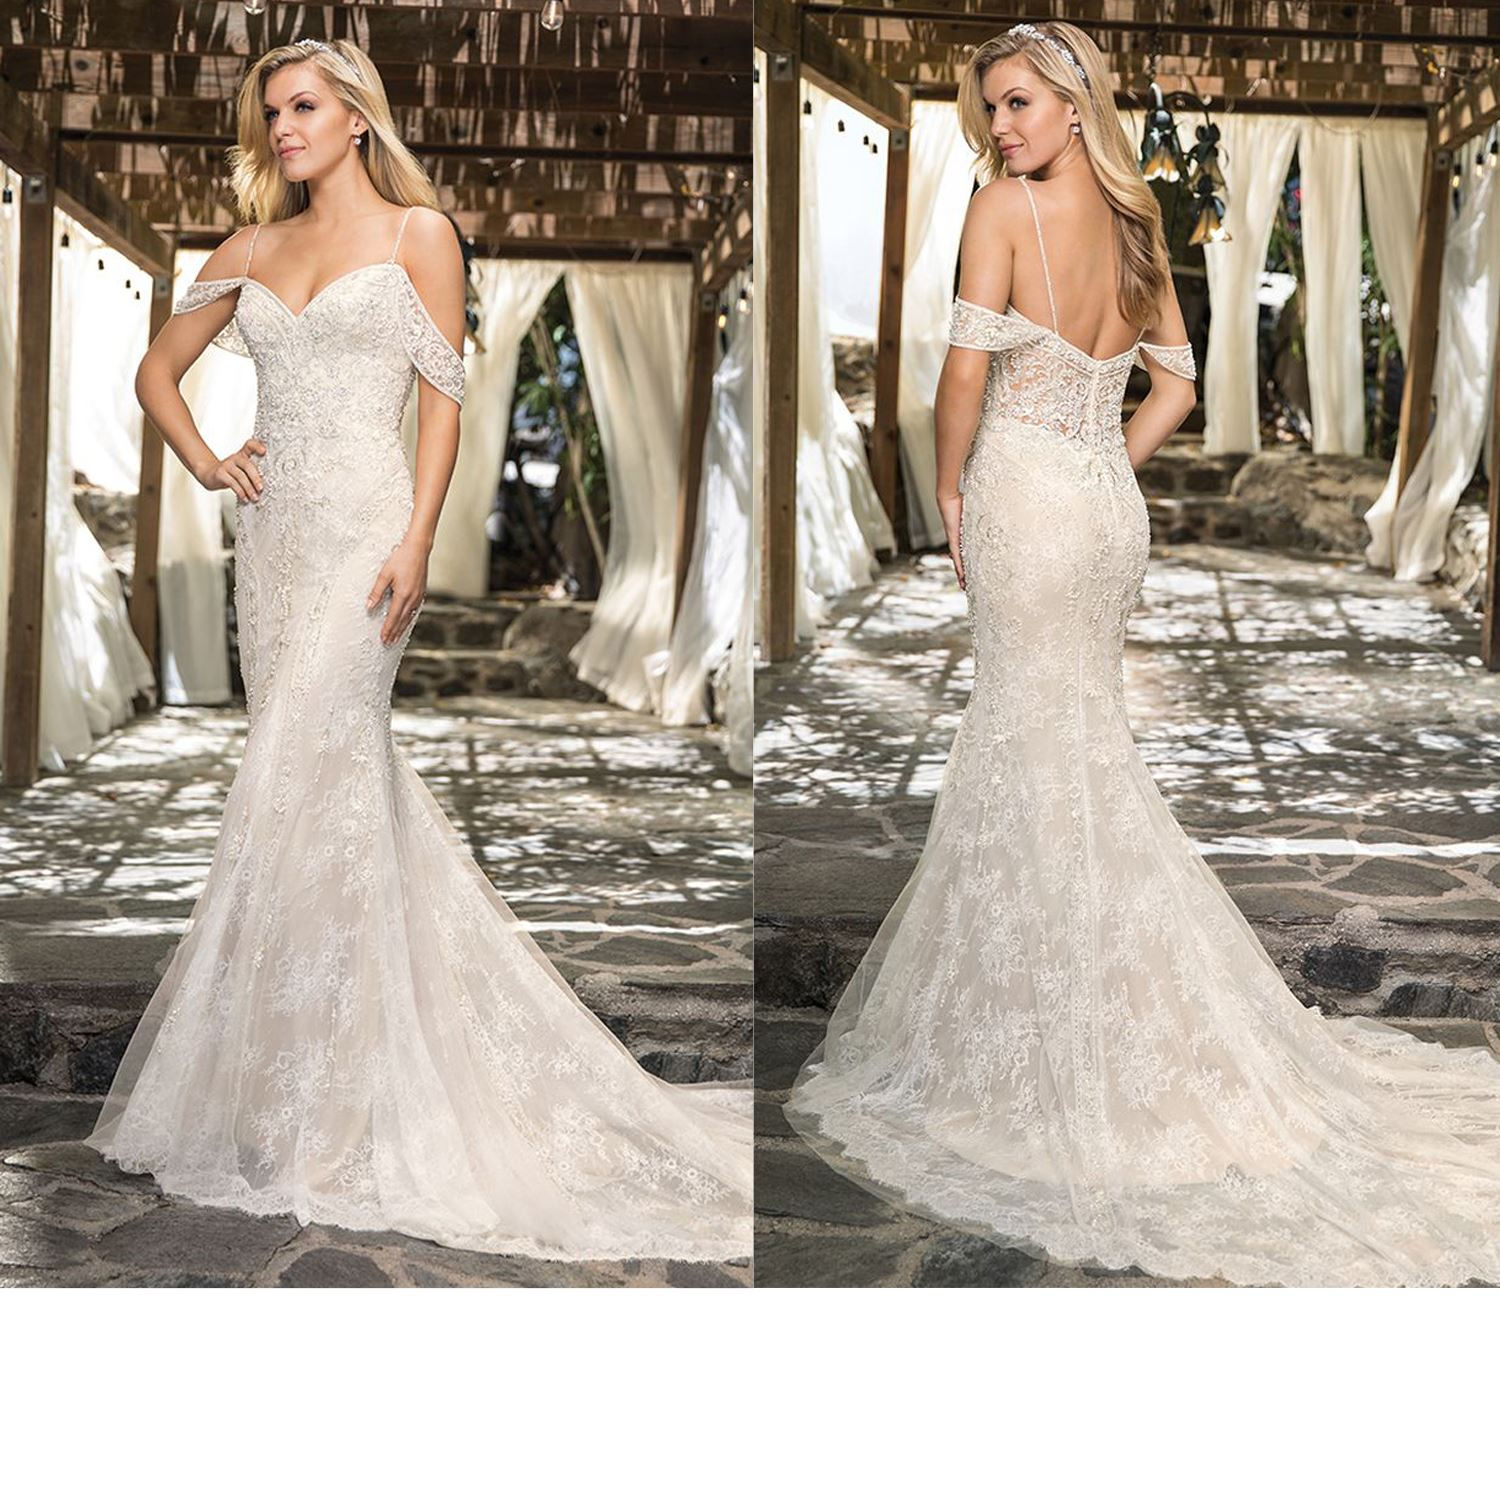 Cecilia - Size 14 - Ivory/Nude/Silver - Originally priced $2099 - Sample box price $1799